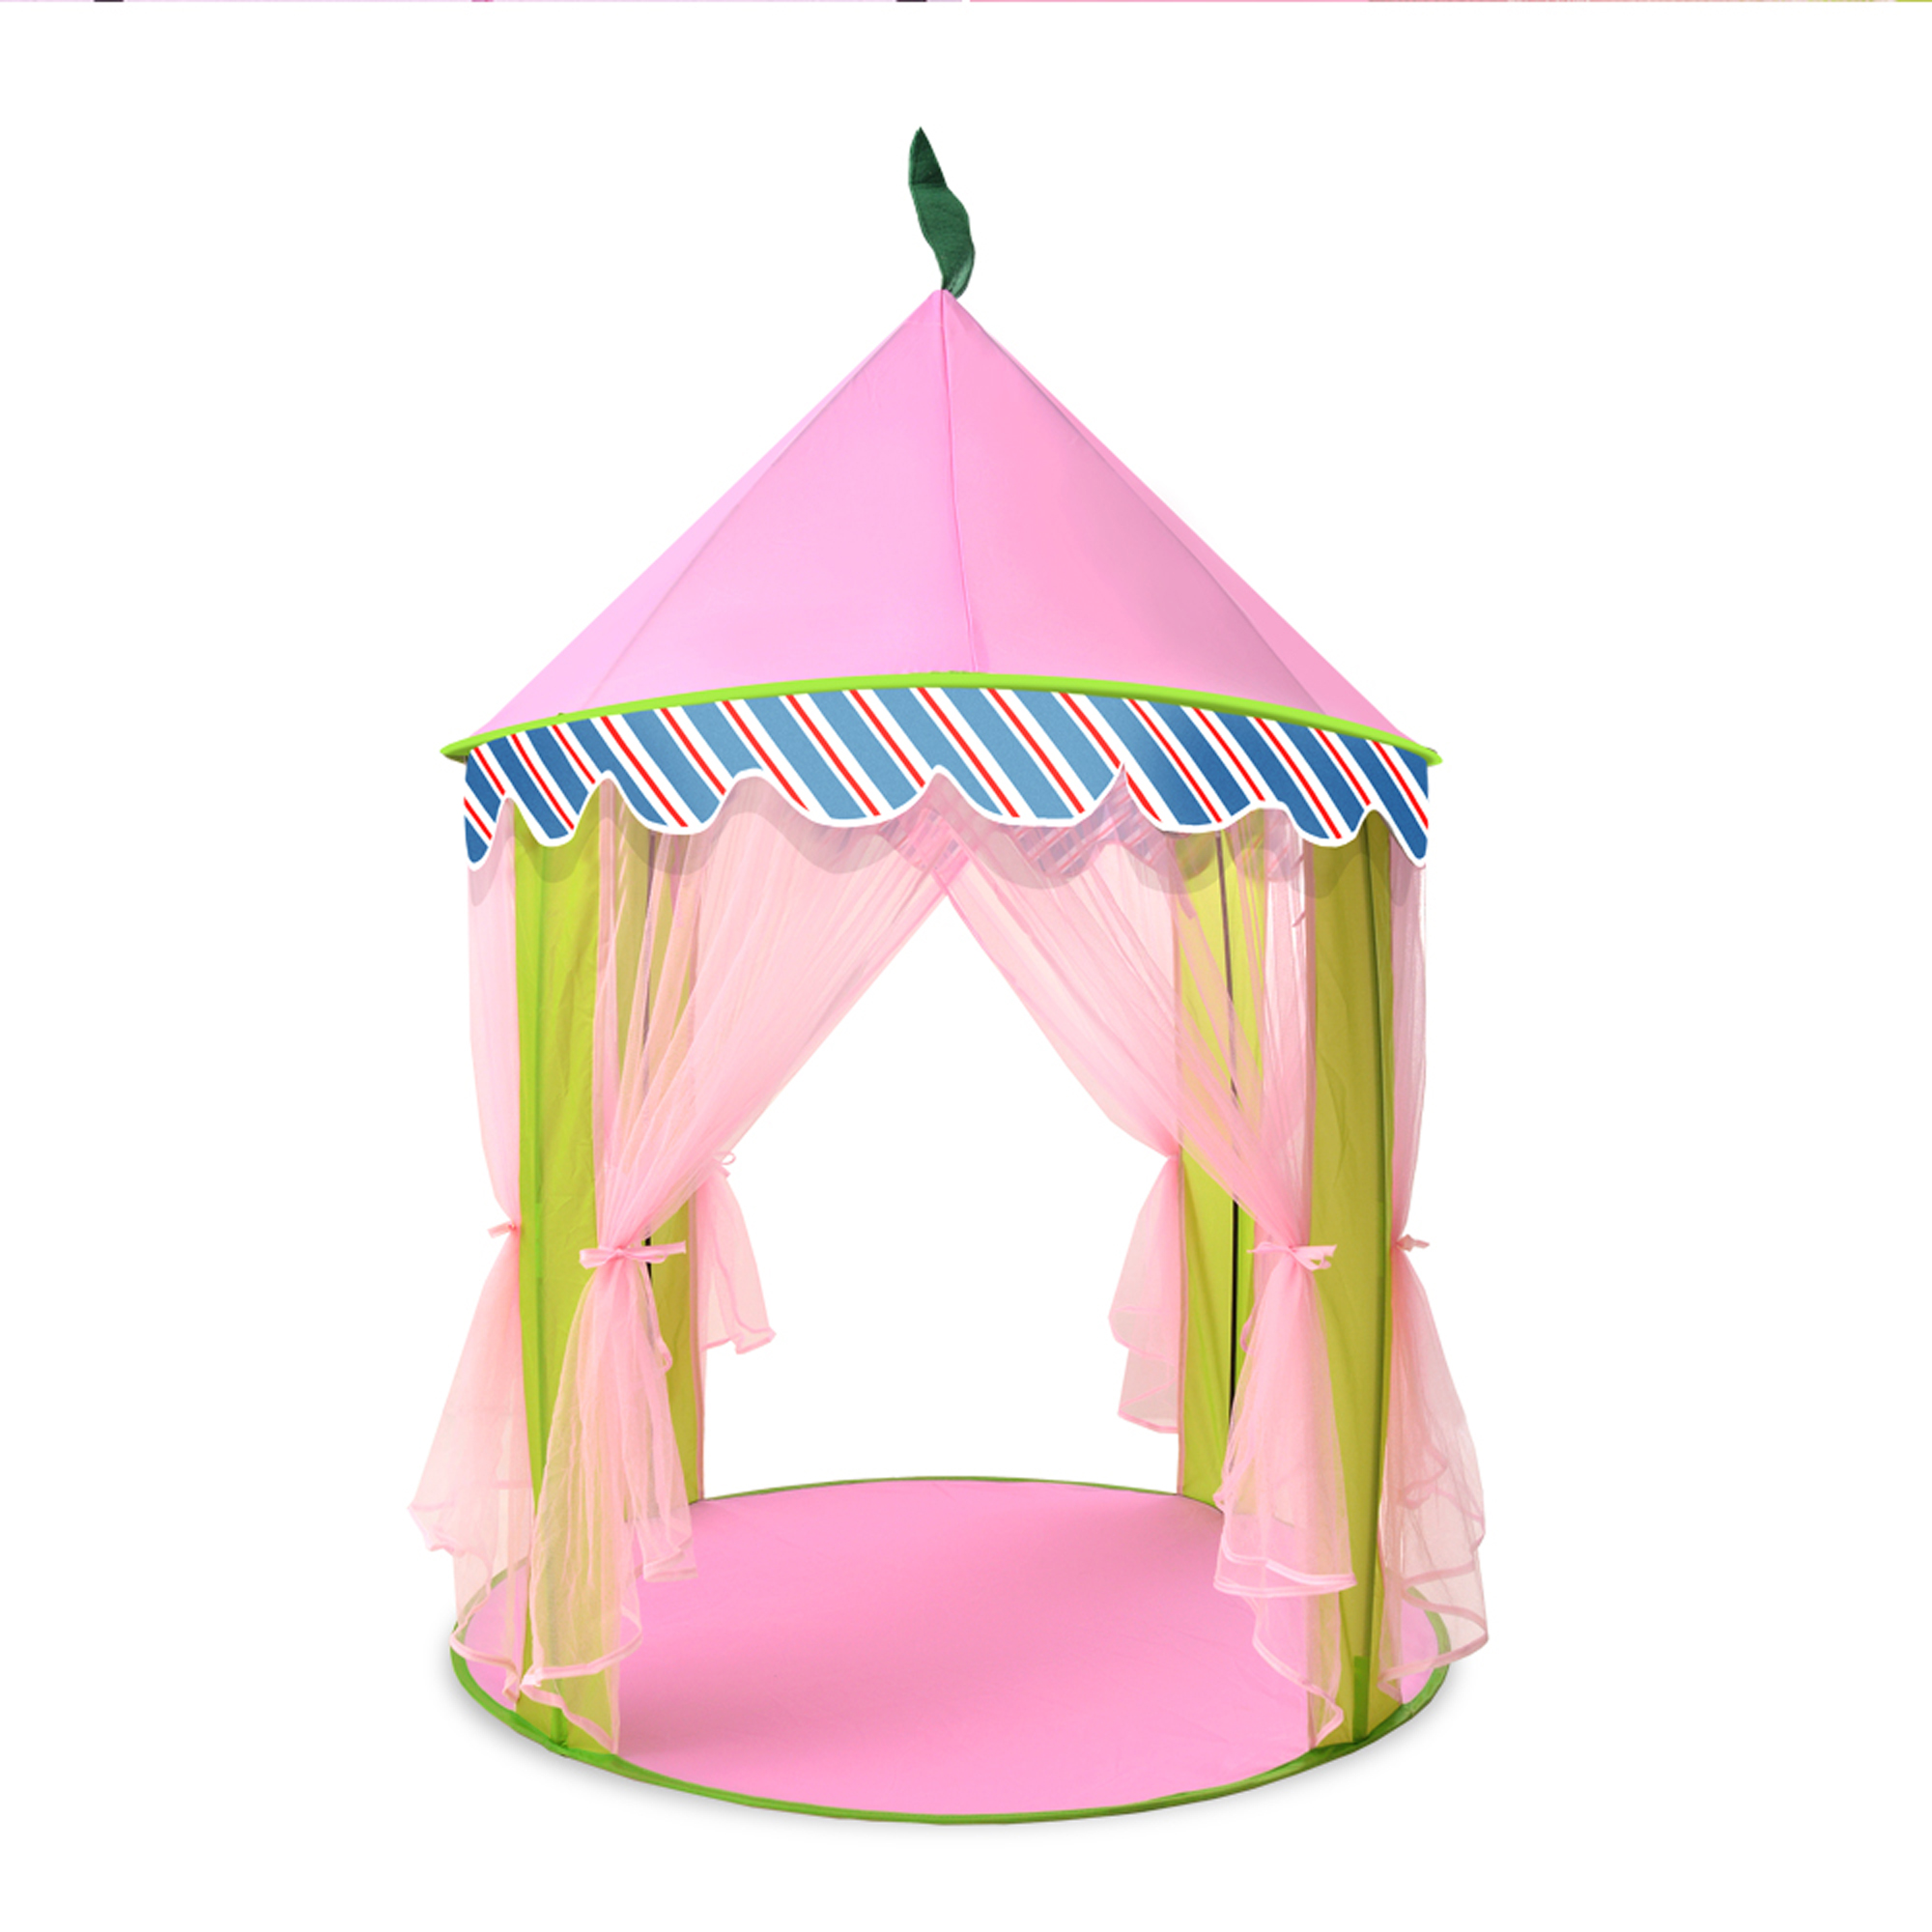 ODOLAND Princess Castle Children Play Tent for Kids Indoor u0026 Outdoor Pink Playhouse  sc 1 st  Walmart : castle tents and playhouses - memphite.com